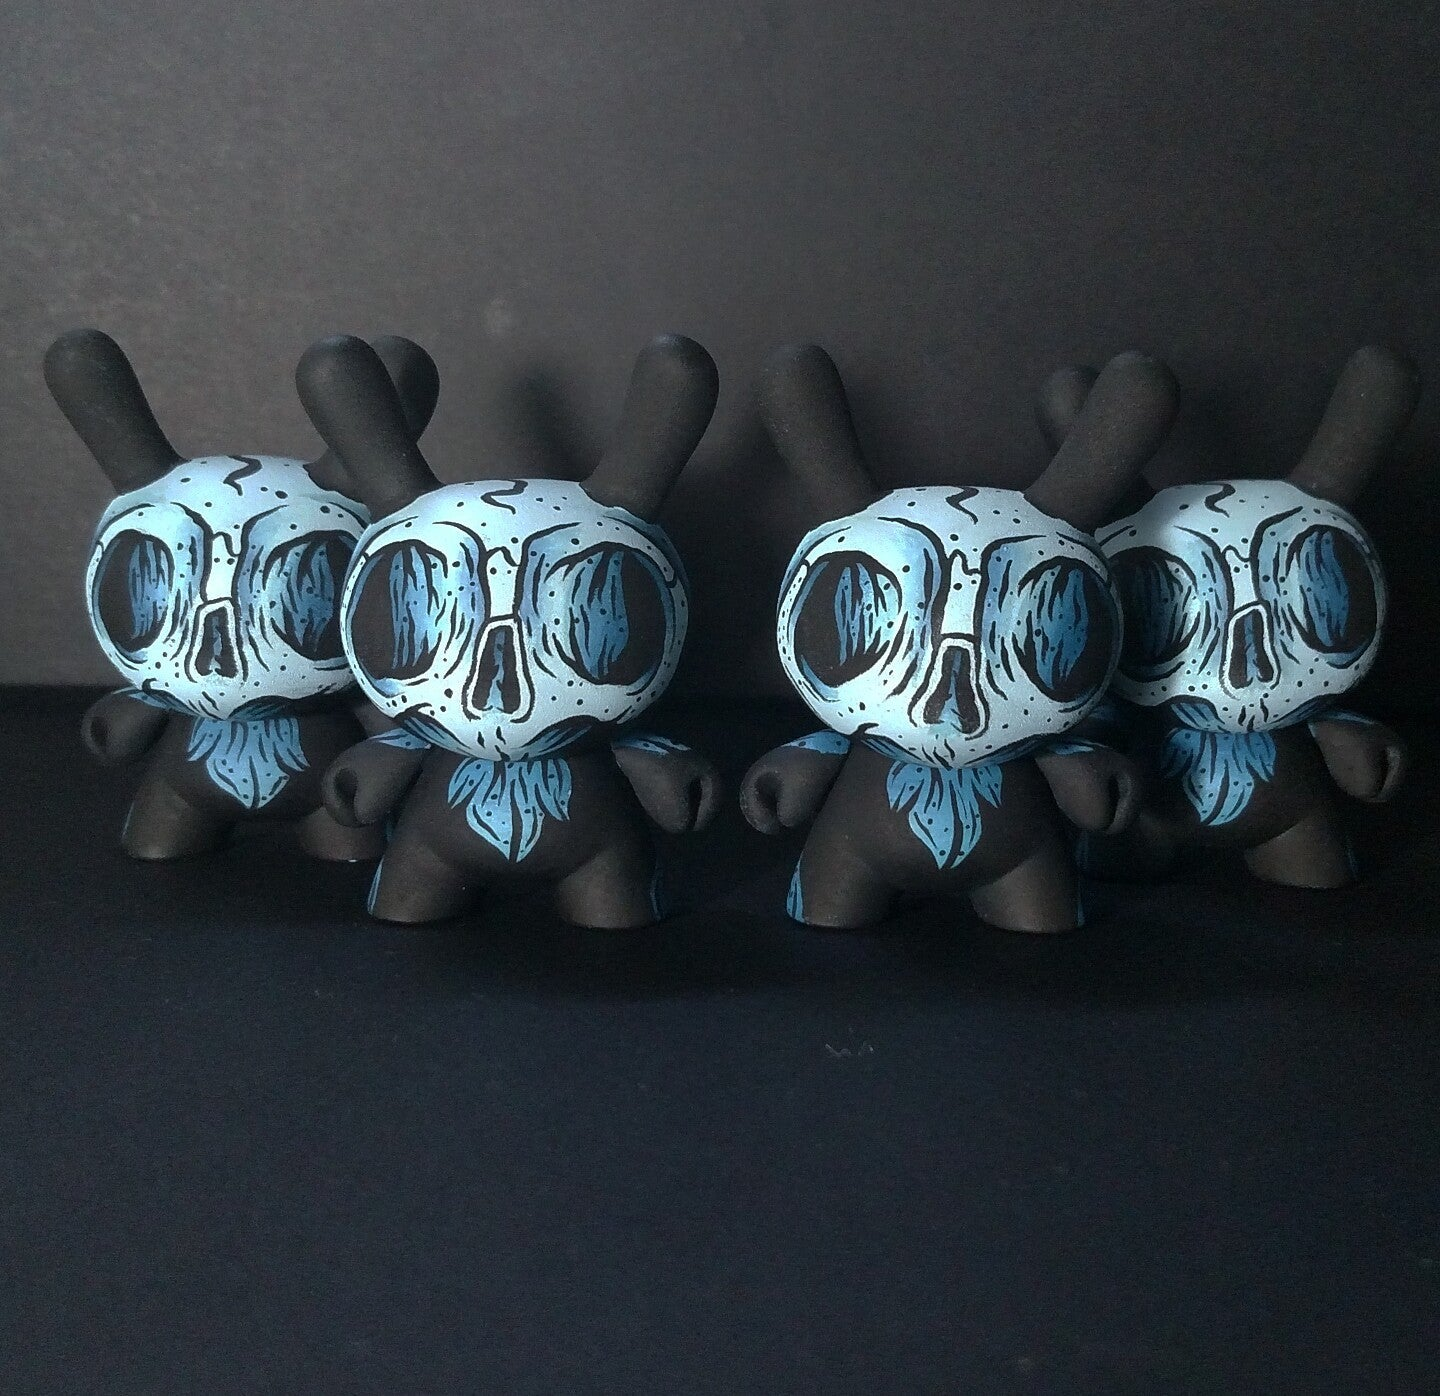 Atomic Fiend Dunnys Blue x Cat Atomic x Strangecat Exclusive